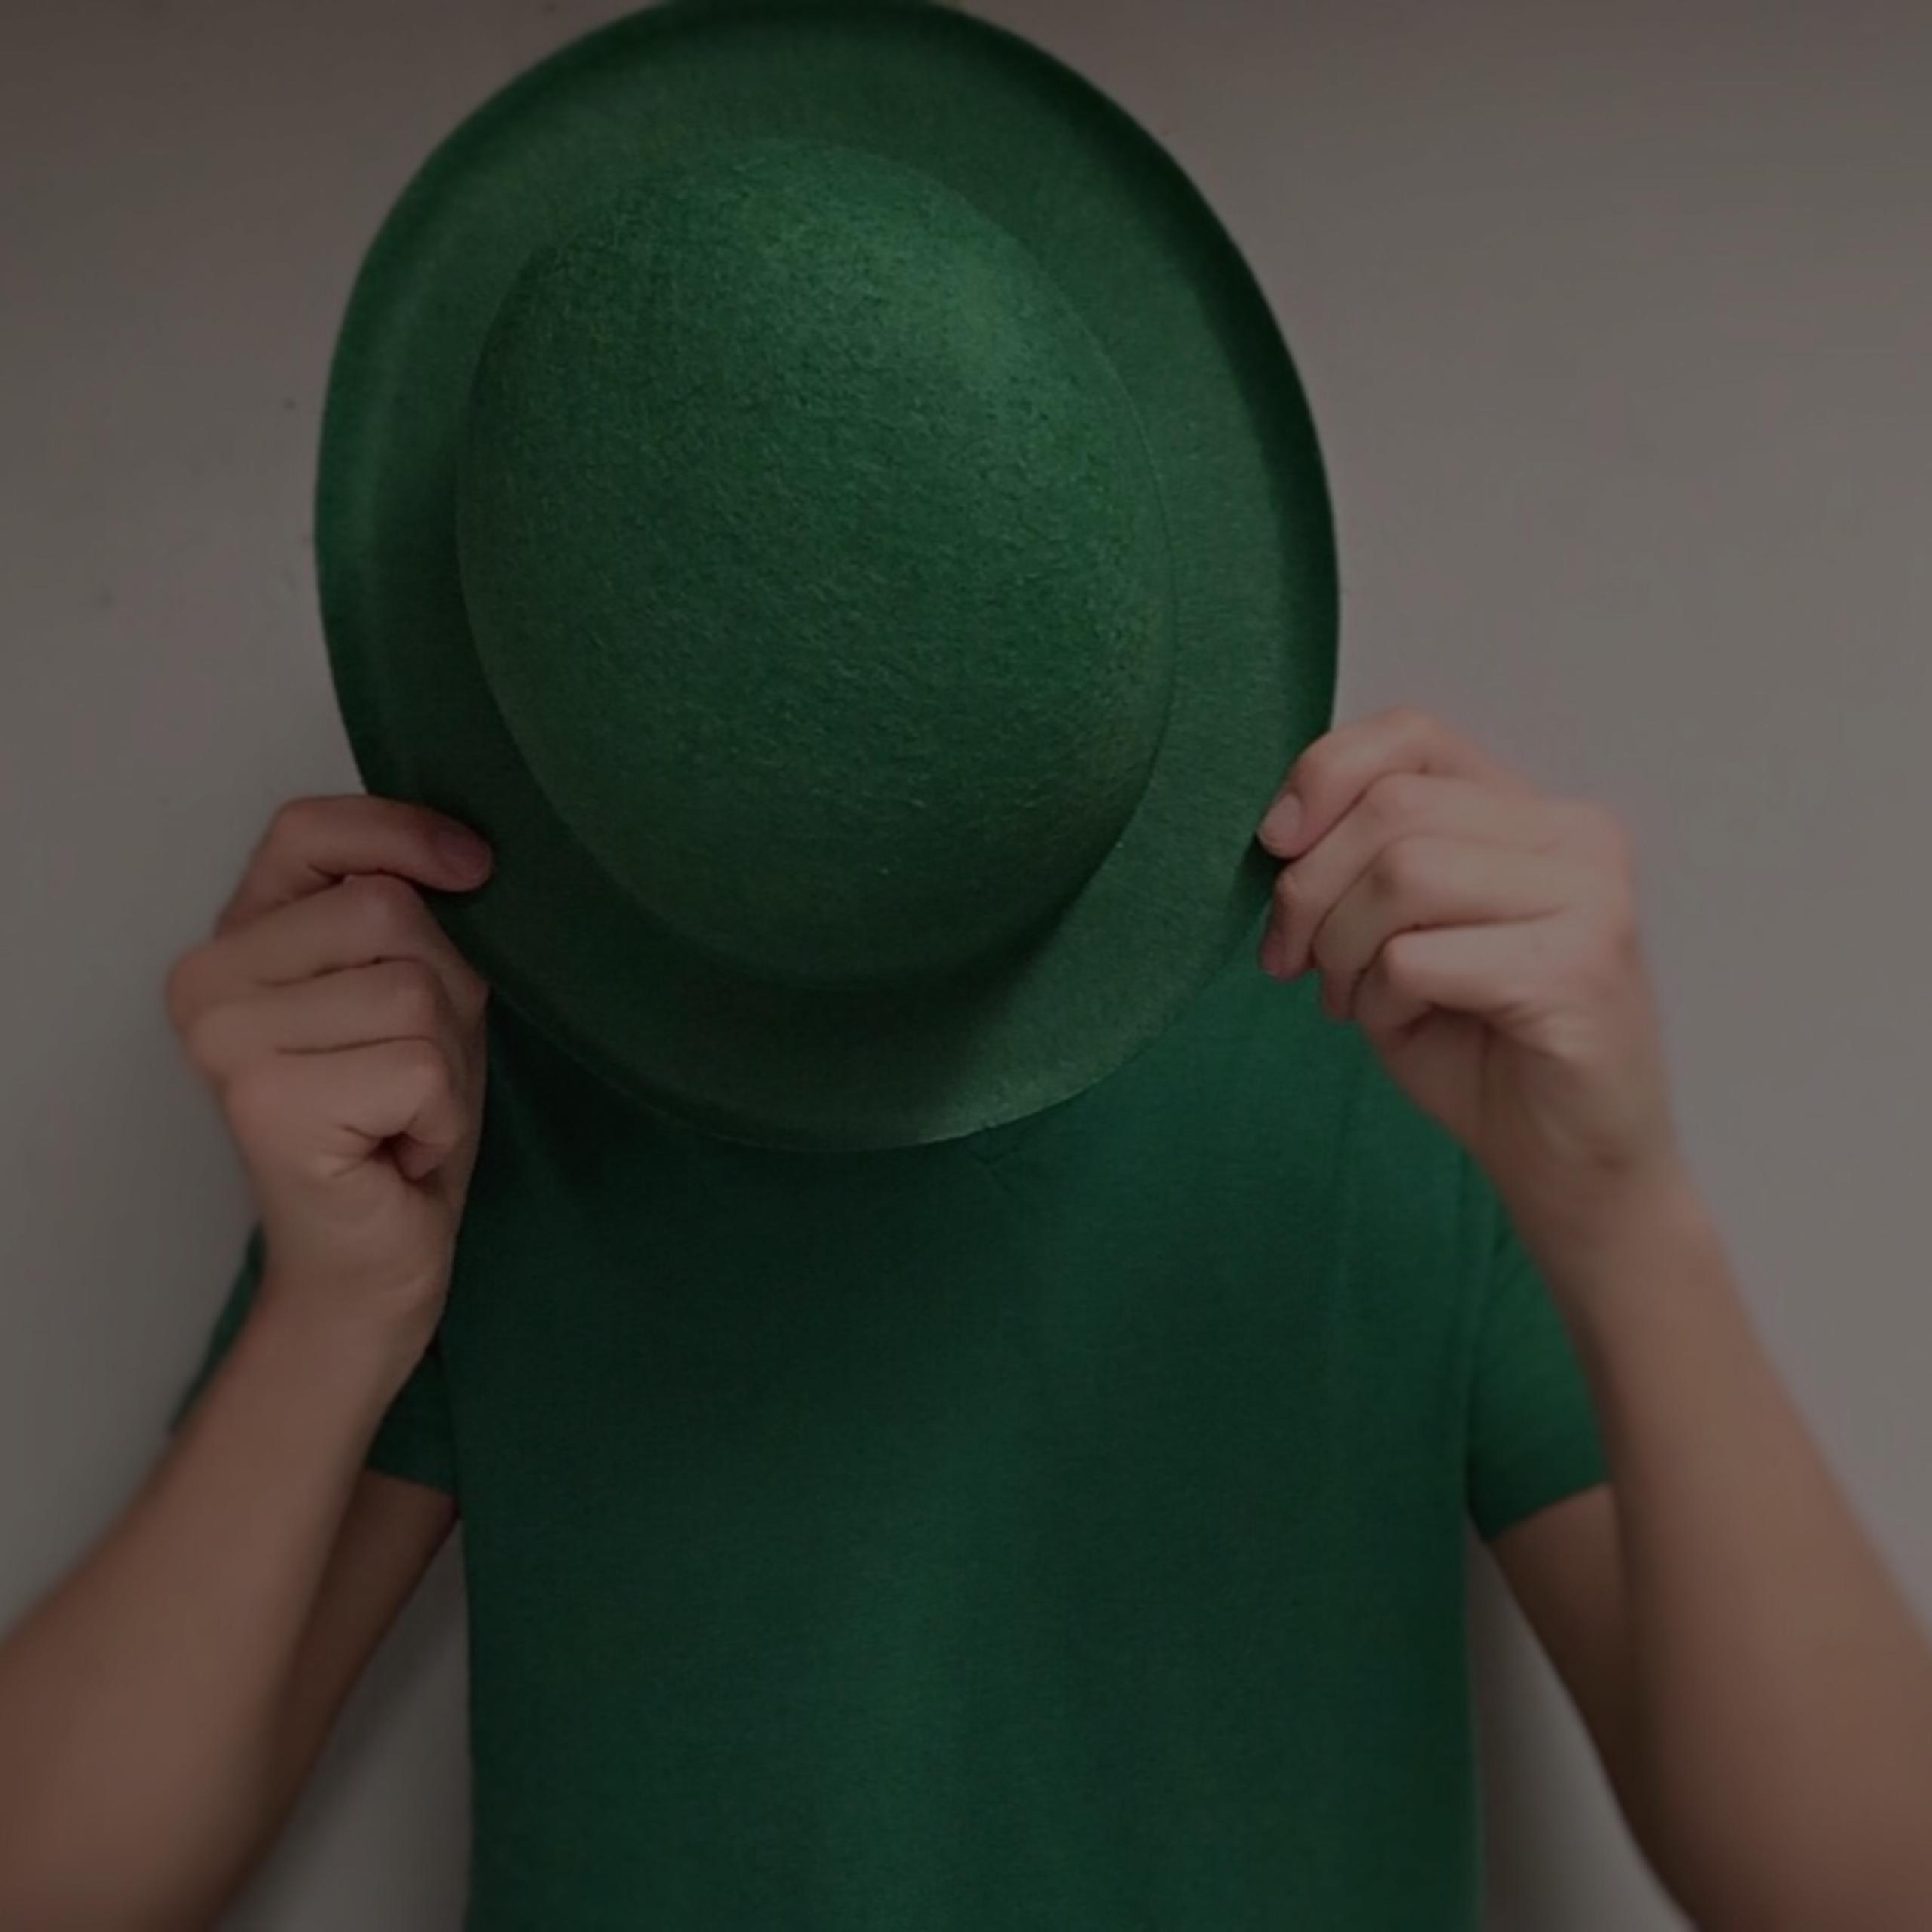 man in green shirt hiding behind green bowler hat on St. Patrick's Day